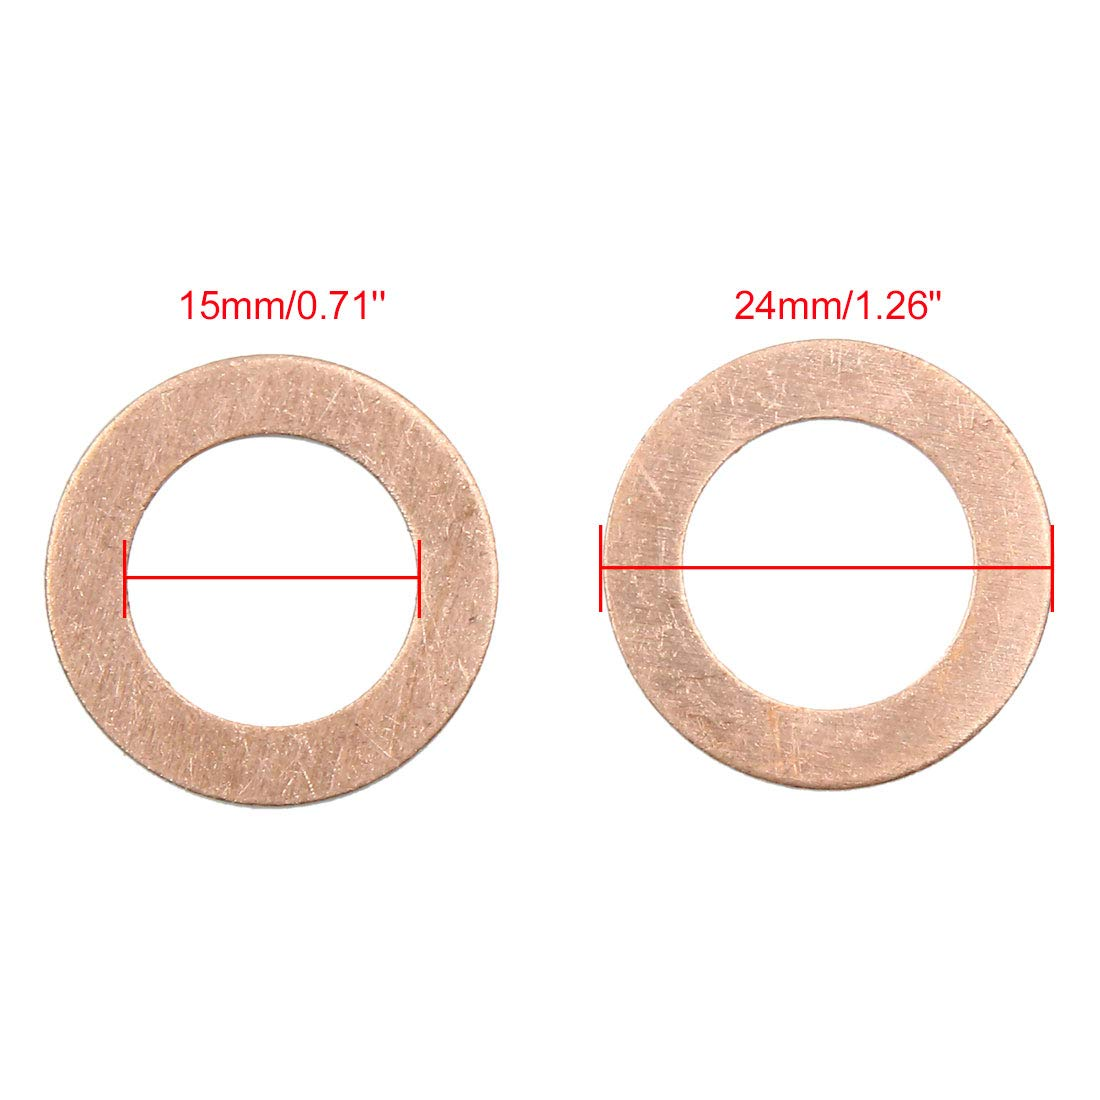 X AUTOHAUX 15mm Inner Dia Copper Crush Washers Car Flat Sealing Plate Gaskets Rings 30pcs by X AUTOHAUX (Image #3)